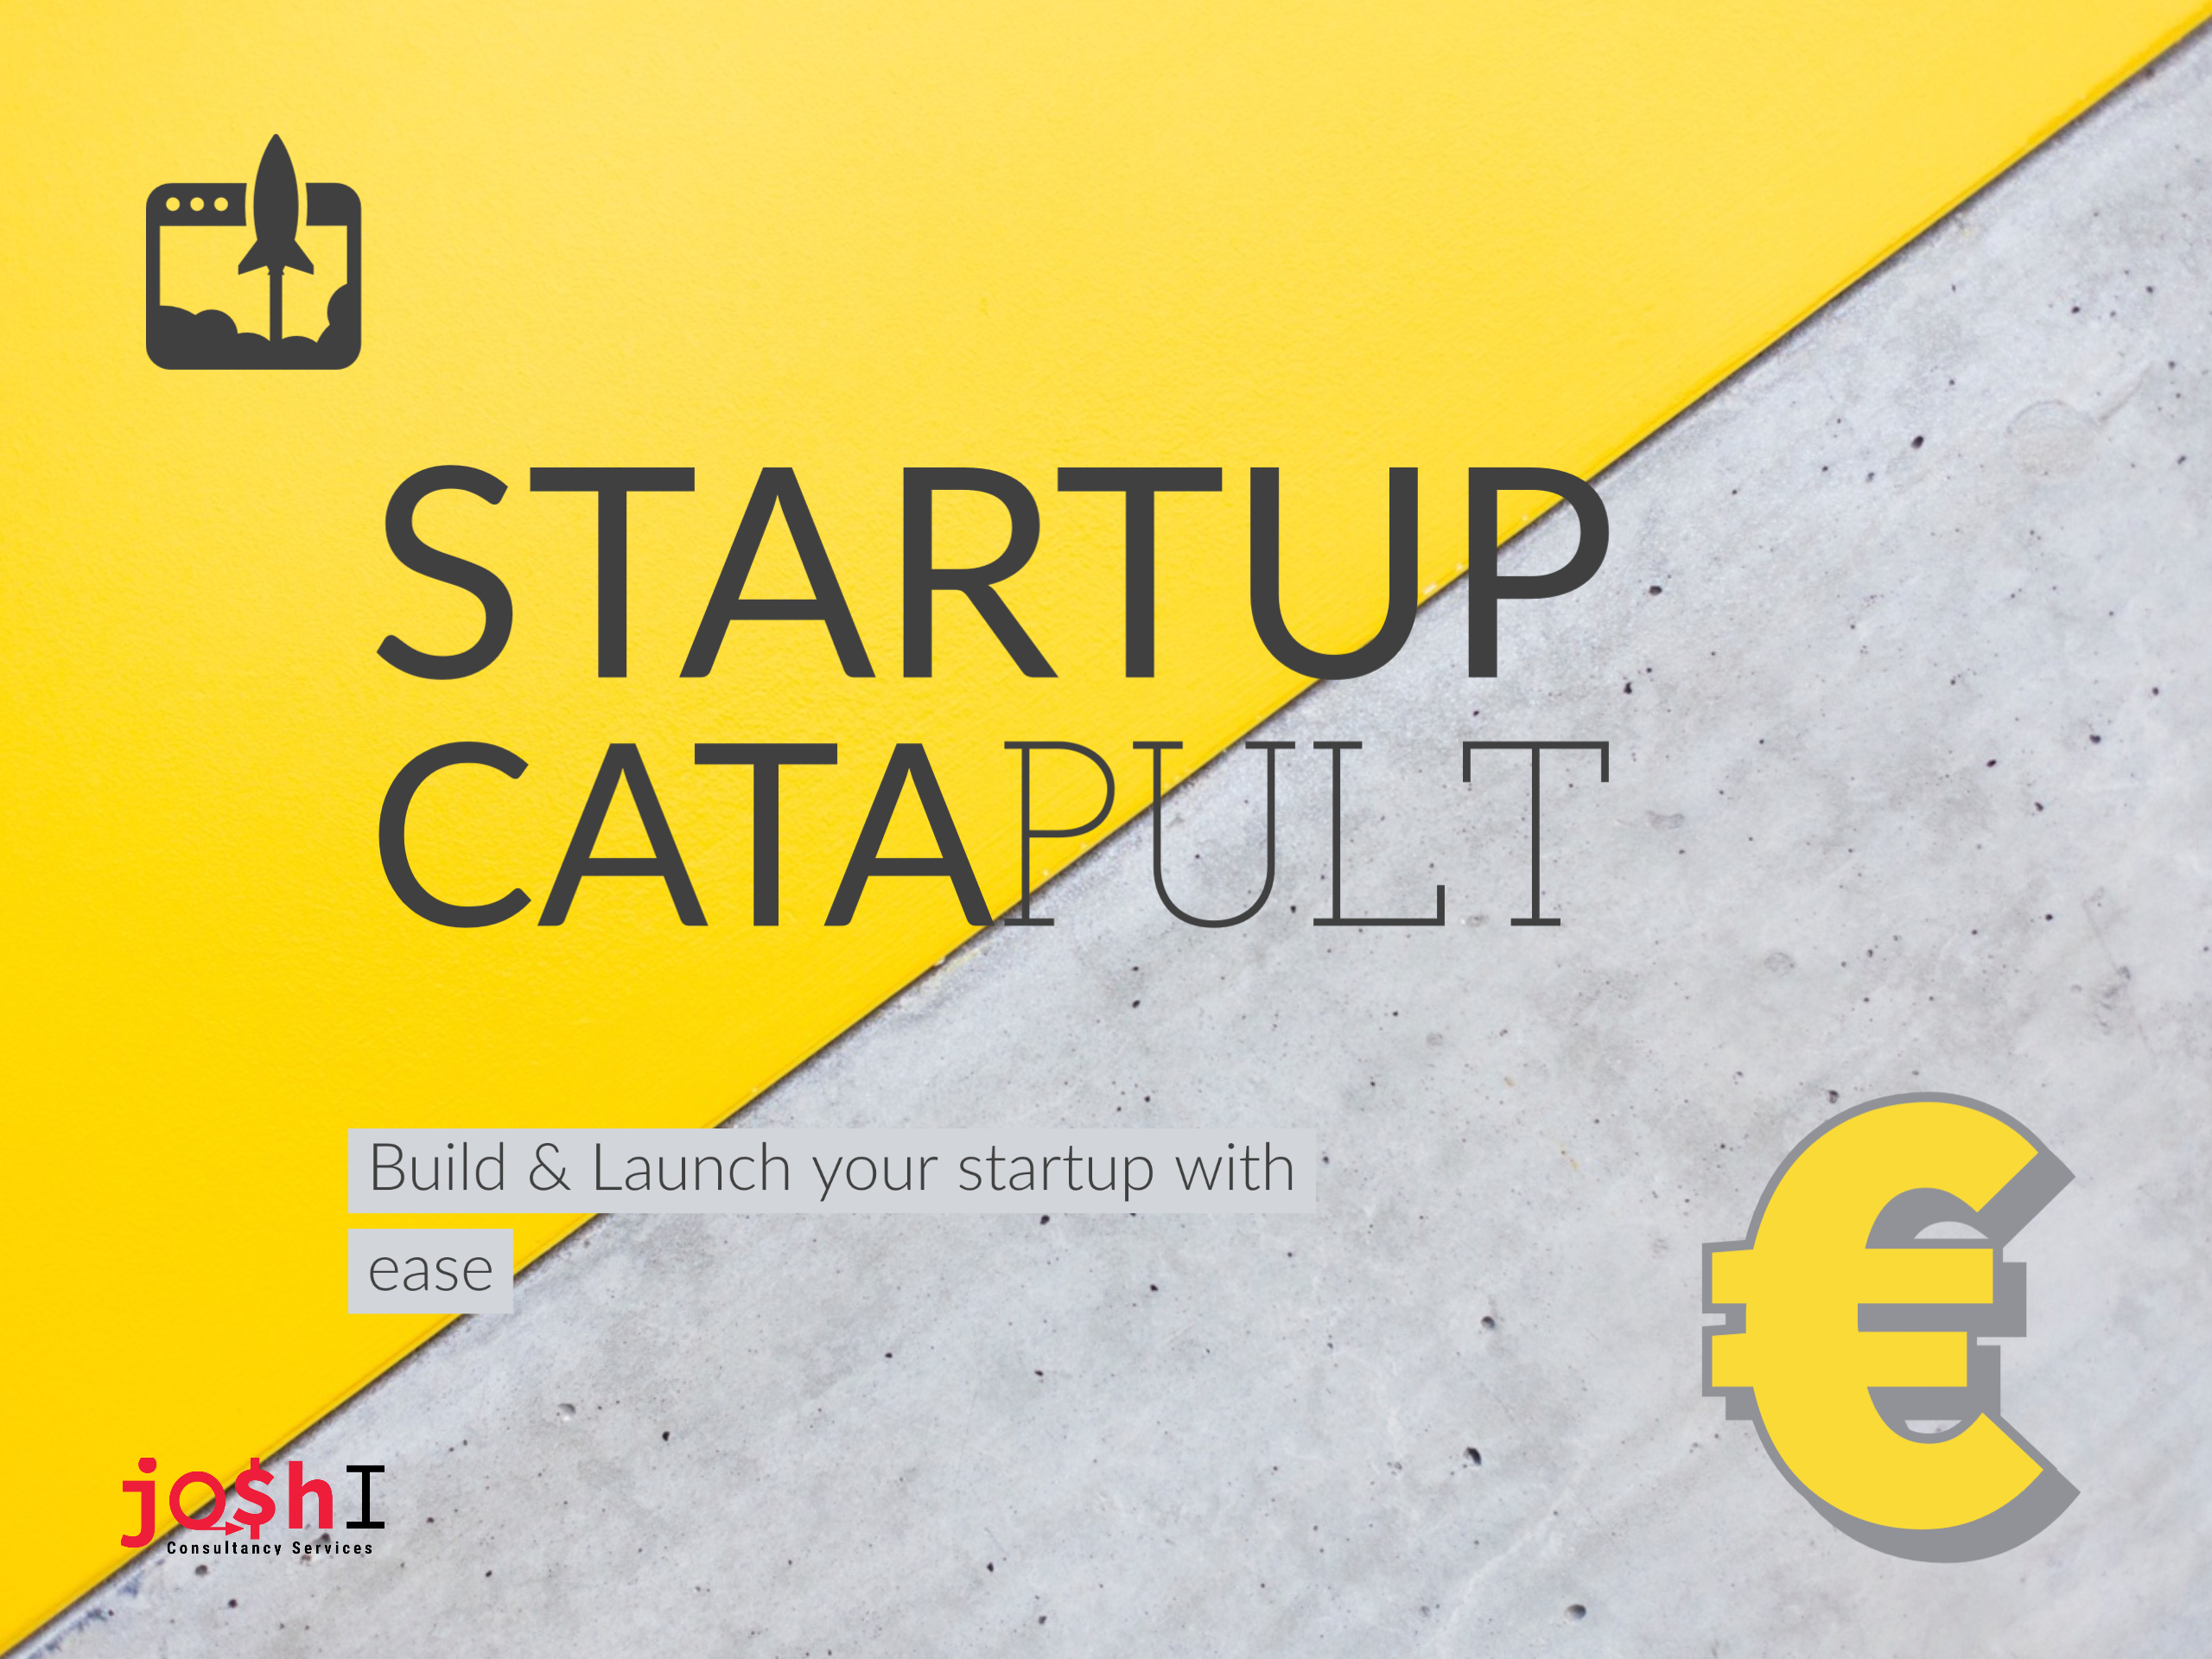 Startup Catapult Partnership Program | Joshi Consultancy Services